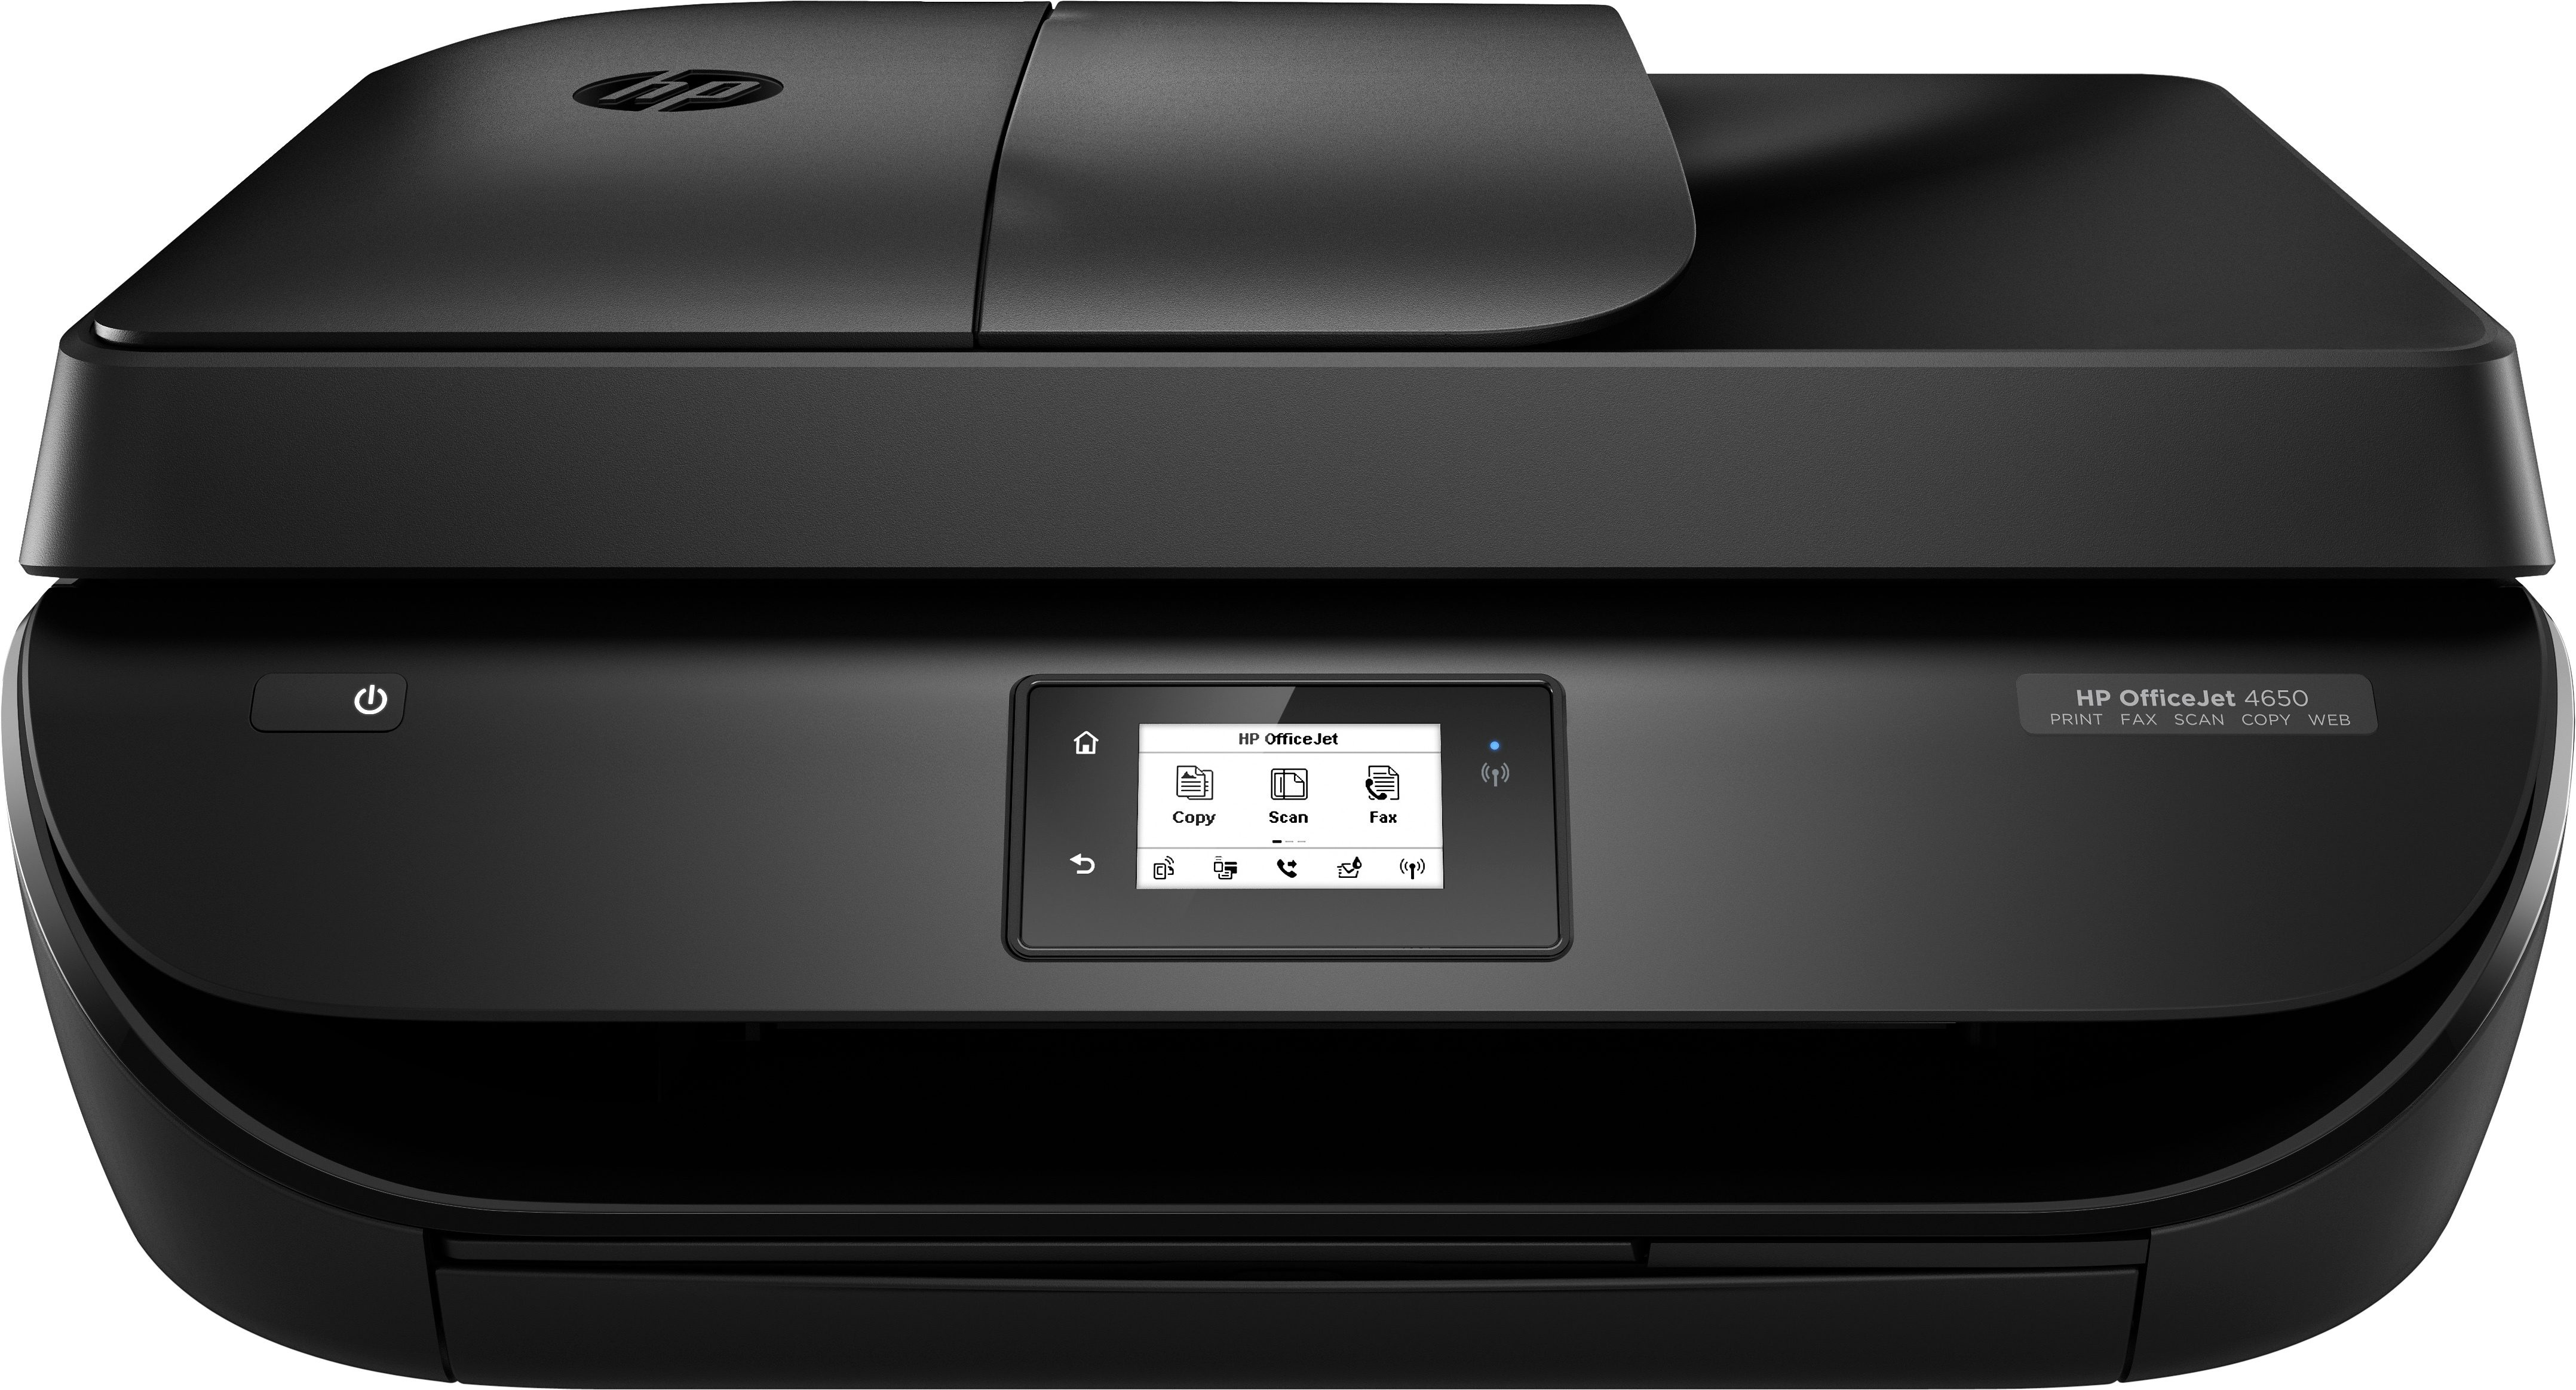 HP Officejet 4650 e-All-in-One Multifunktionsdrucker